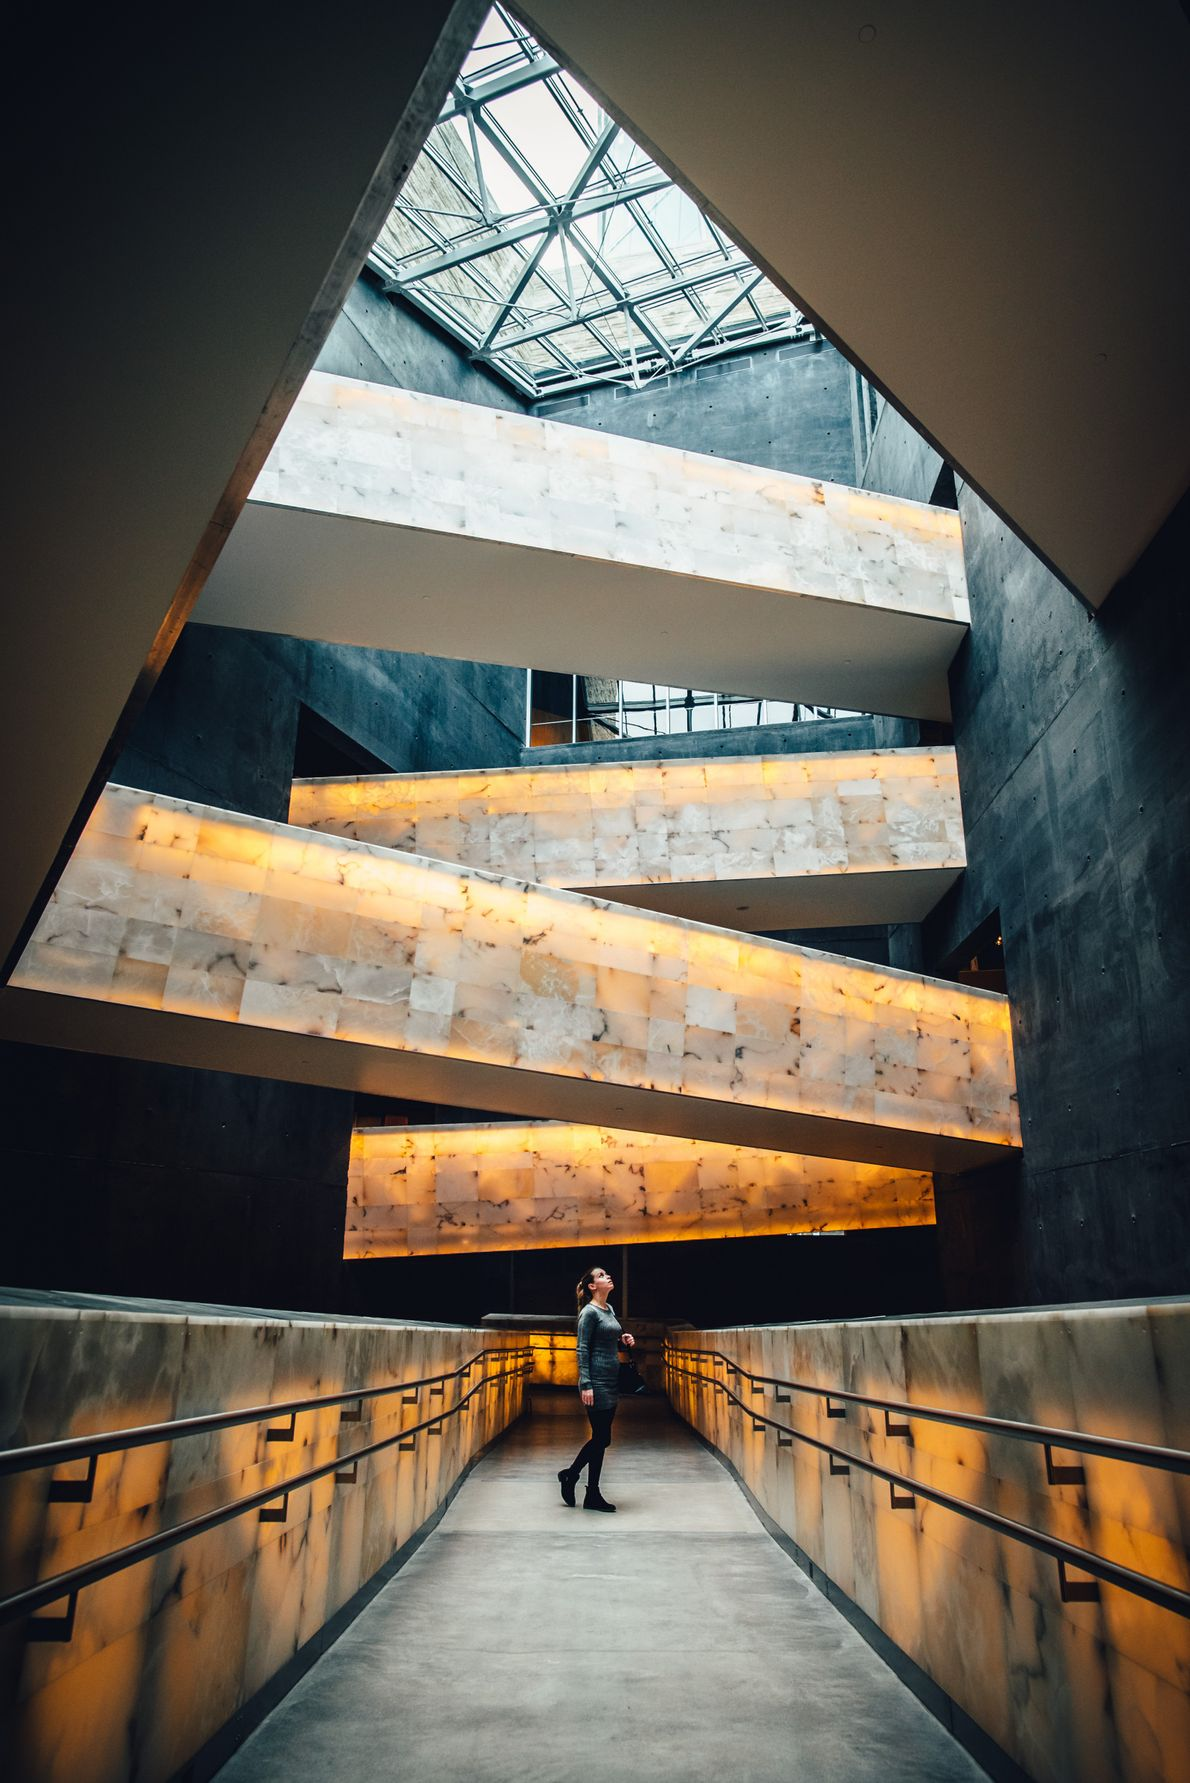 Visitors to the Canadian Museum of Human Rights are led through the Great Hall, then a ...